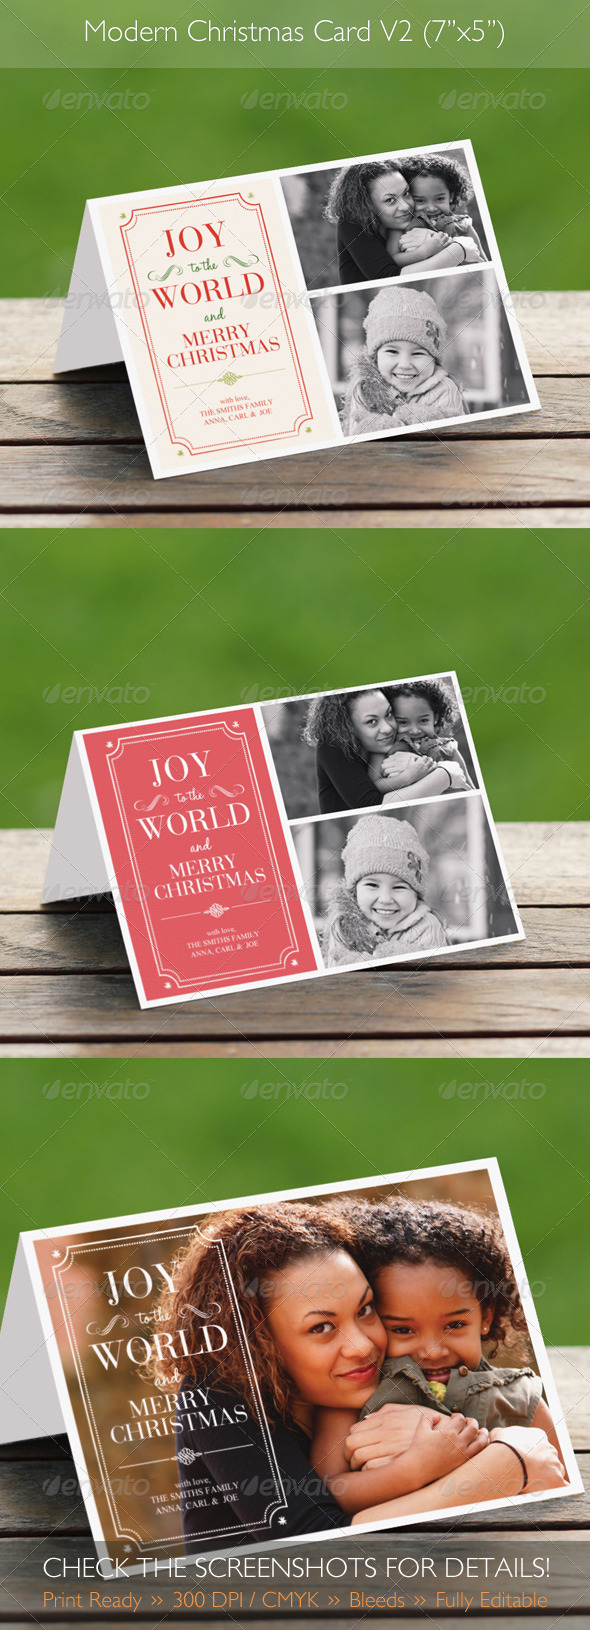 Modern Christmas Card V2 - Holiday Greeting Cards